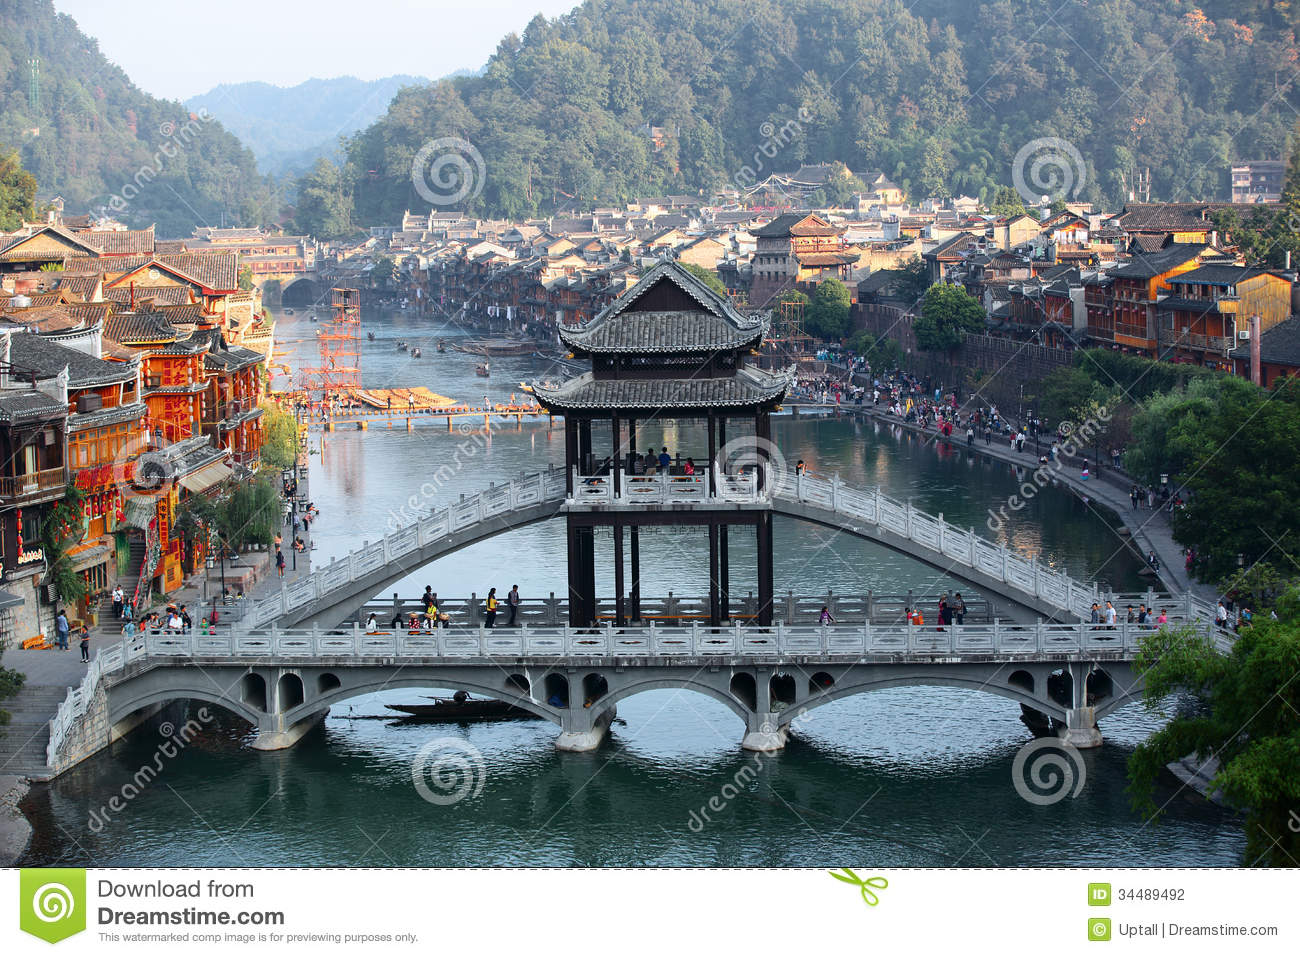 Royalty Free Stock Image Green Cloud Hanging Banner Illustration Design Over White Background Image35921706 additionally Stock Images Palacio De Cristal Madrid Image13971124 besides Stock Photography Fenghuang Ancient Town Tuojiang River Stone Bridge Wooden Houses Many Tourists Visiting Hunan Province China Oct Image34489492 besides Butterfly House Profile 3666 likewise Royalty Free Stock Photography Traditional Japanese House Garden Image12412987. on tree house building plans